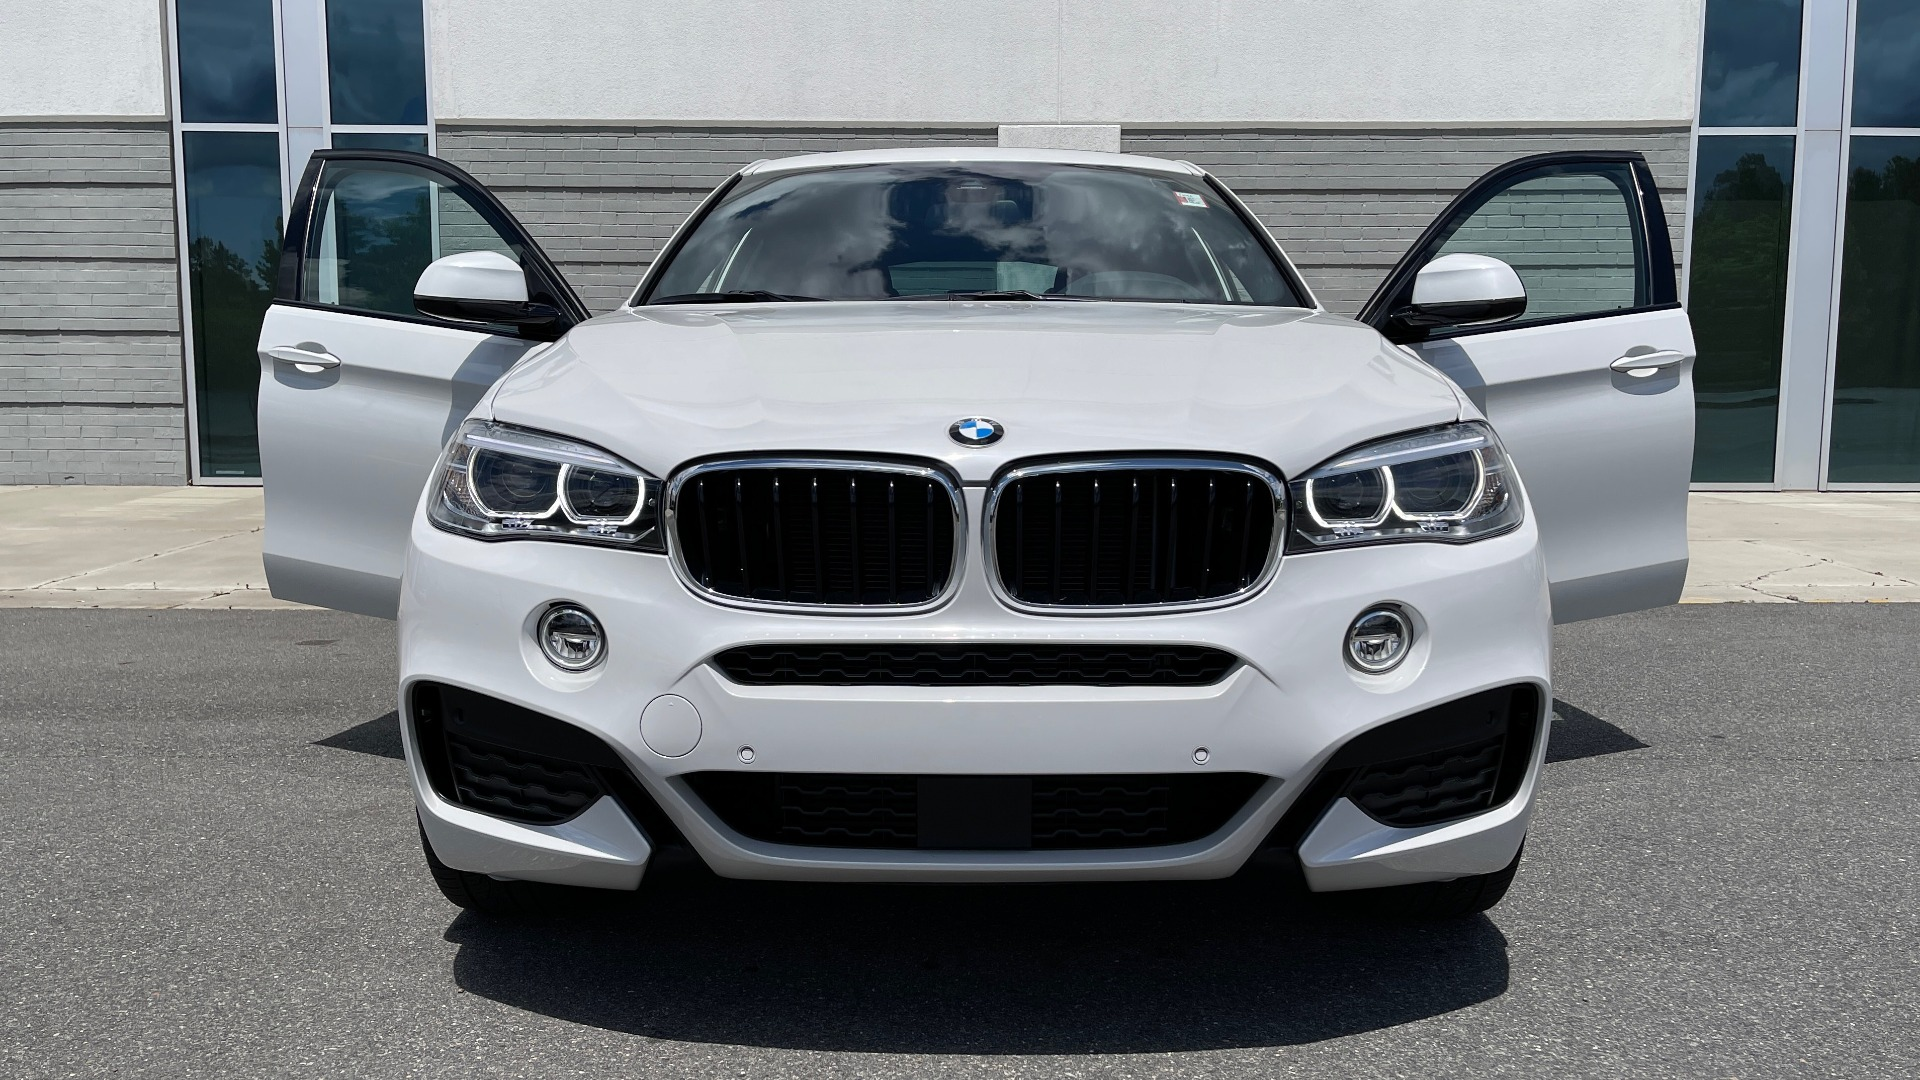 Used 2018 BMW X6 XDRIVE35I M-SPORT / NAV / DRVR ASST PLUS / ADAPT M-SUSP / REARVIEW for sale Sold at Formula Imports in Charlotte NC 28227 25